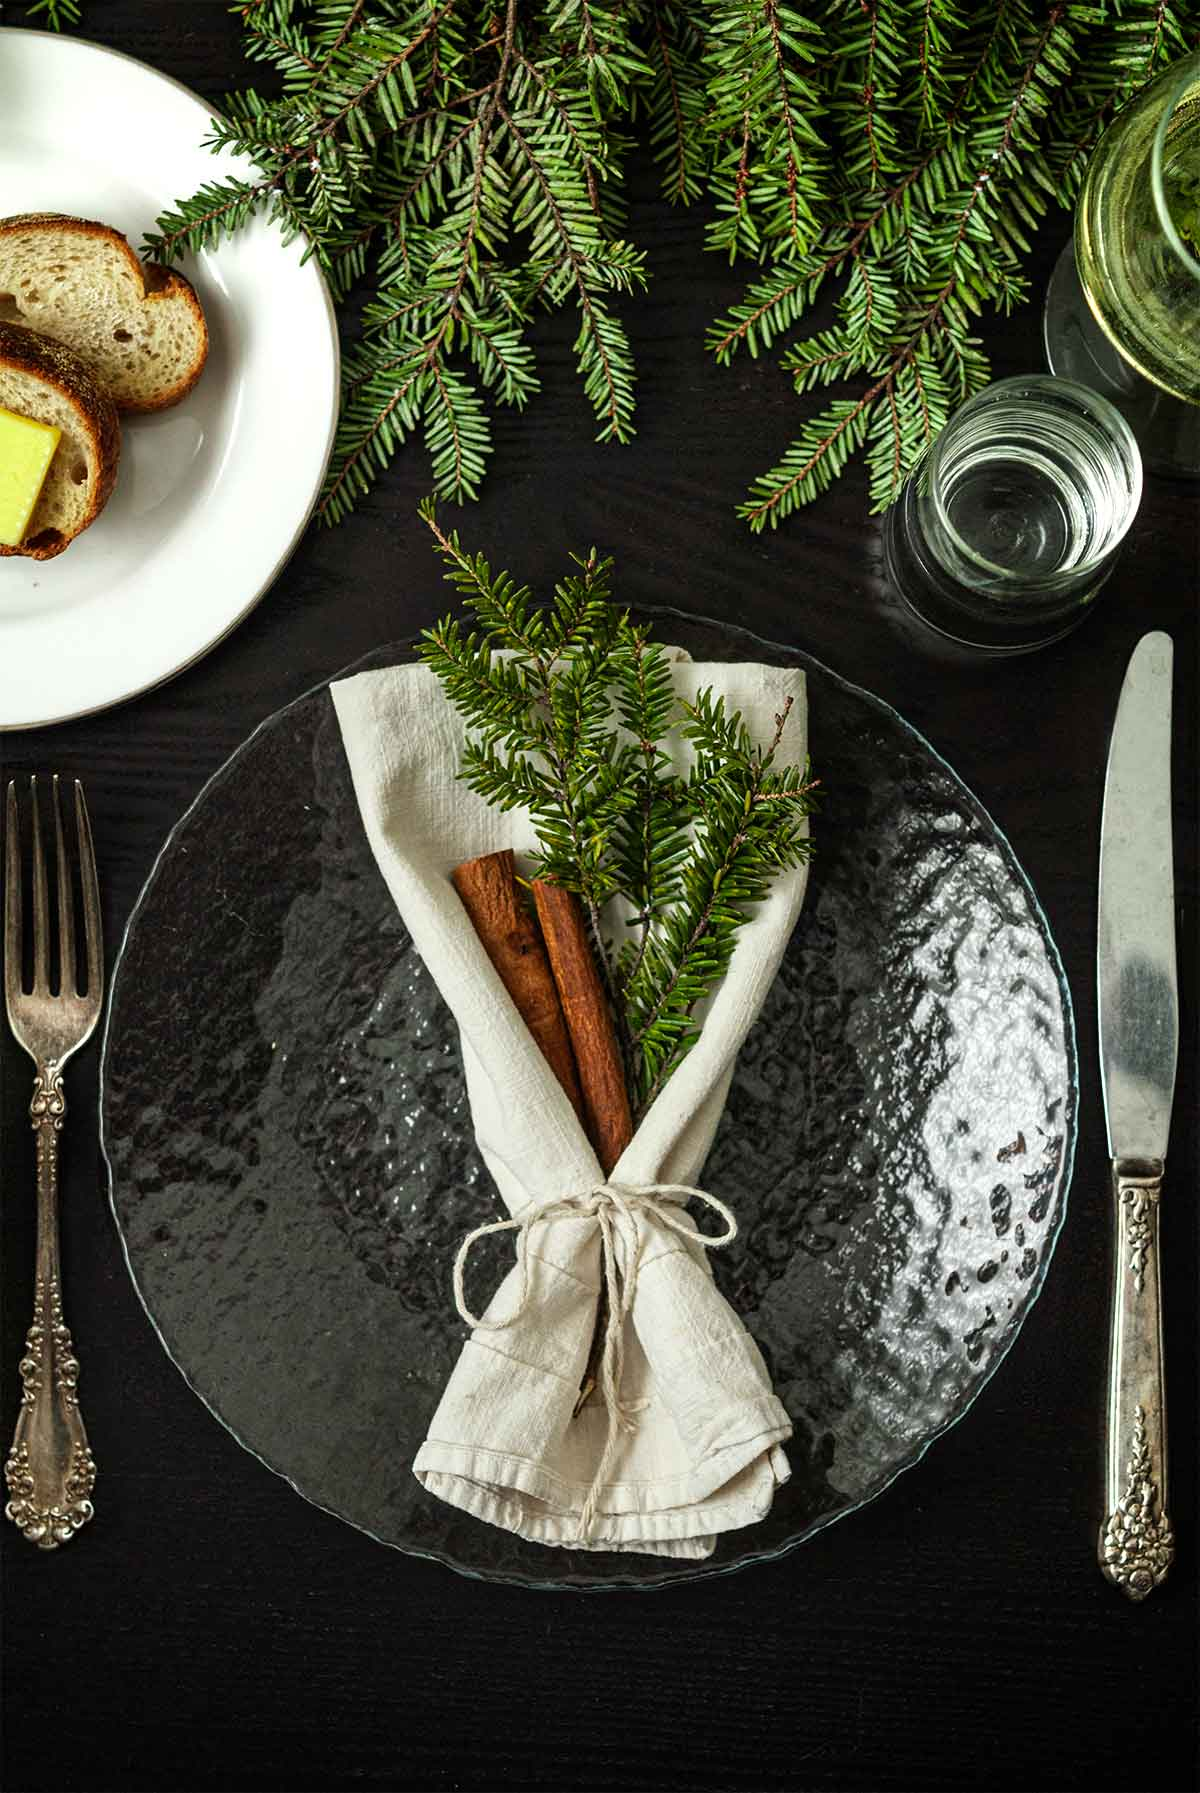 Sprigs of pine and cinnamon sticks in a napkin on a plate on a table with greenery, a plate of bread, silverware and glasses.